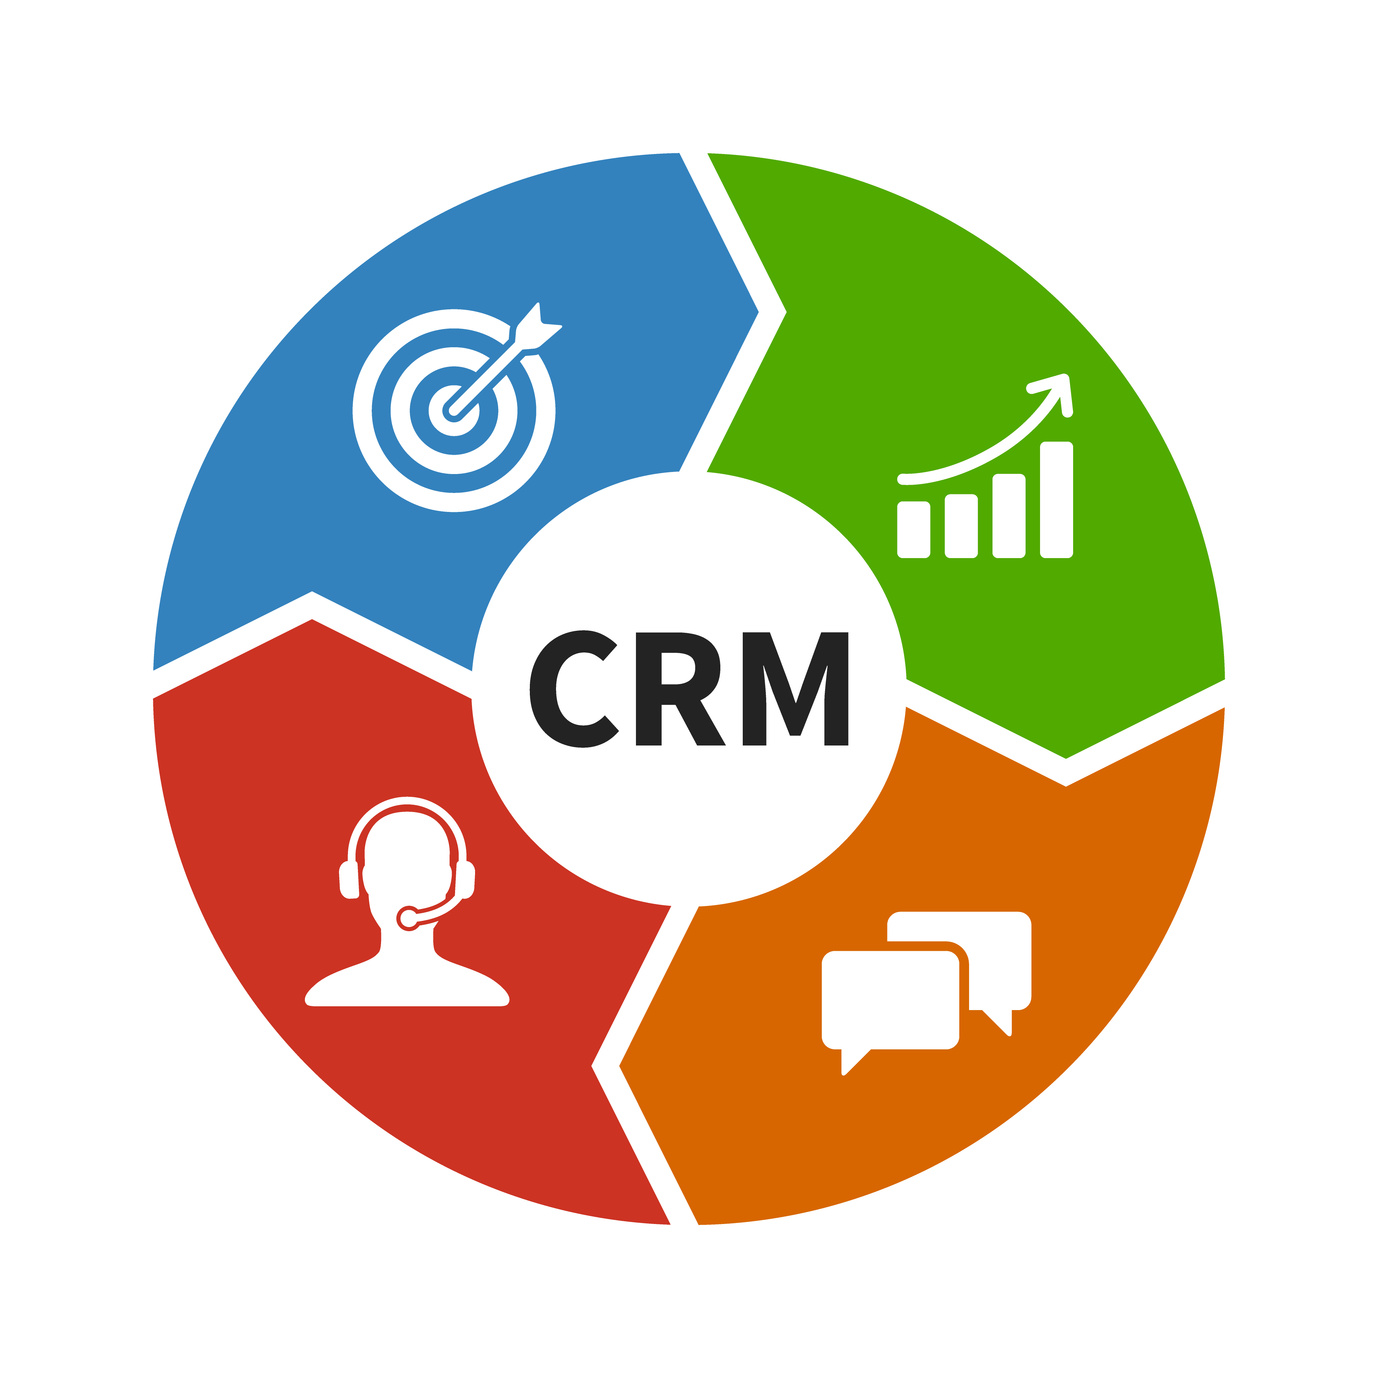 what is a customer relationship manager?